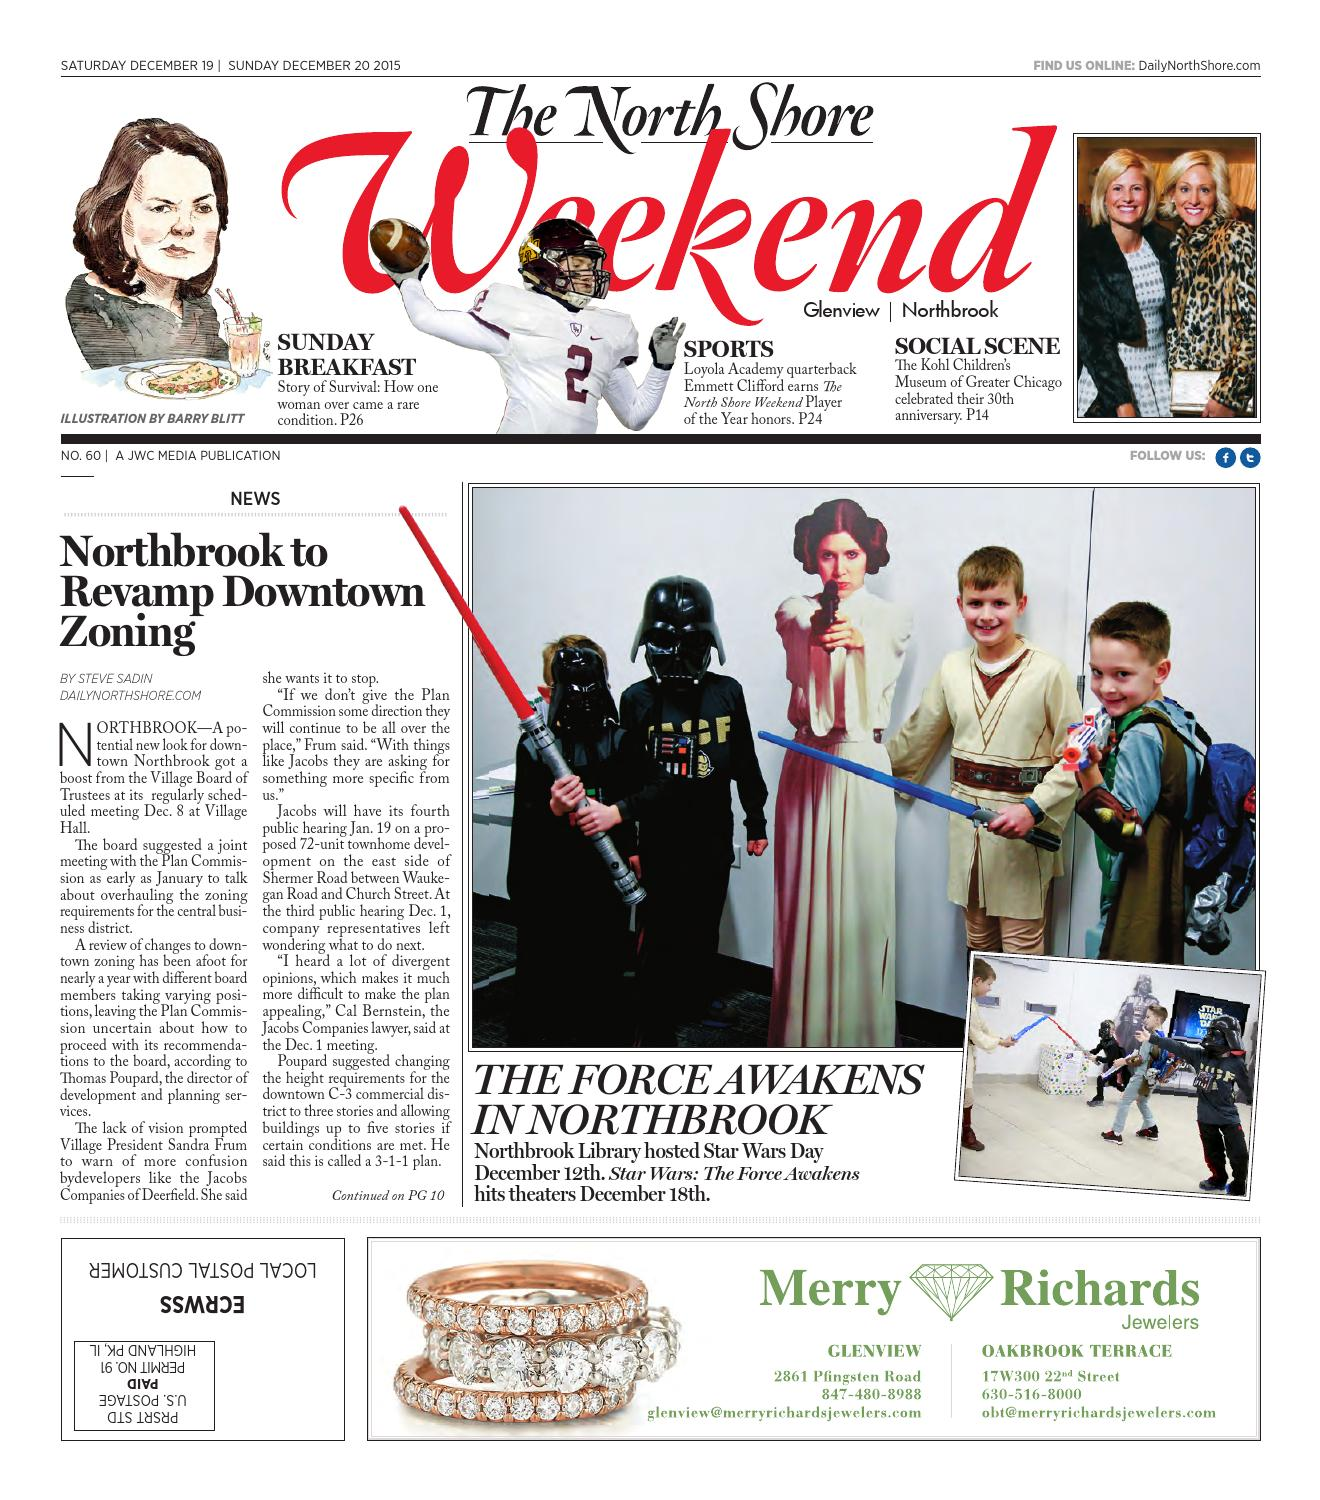 The North Shore Weekend West, Issue 60 by JWC Media - issuu